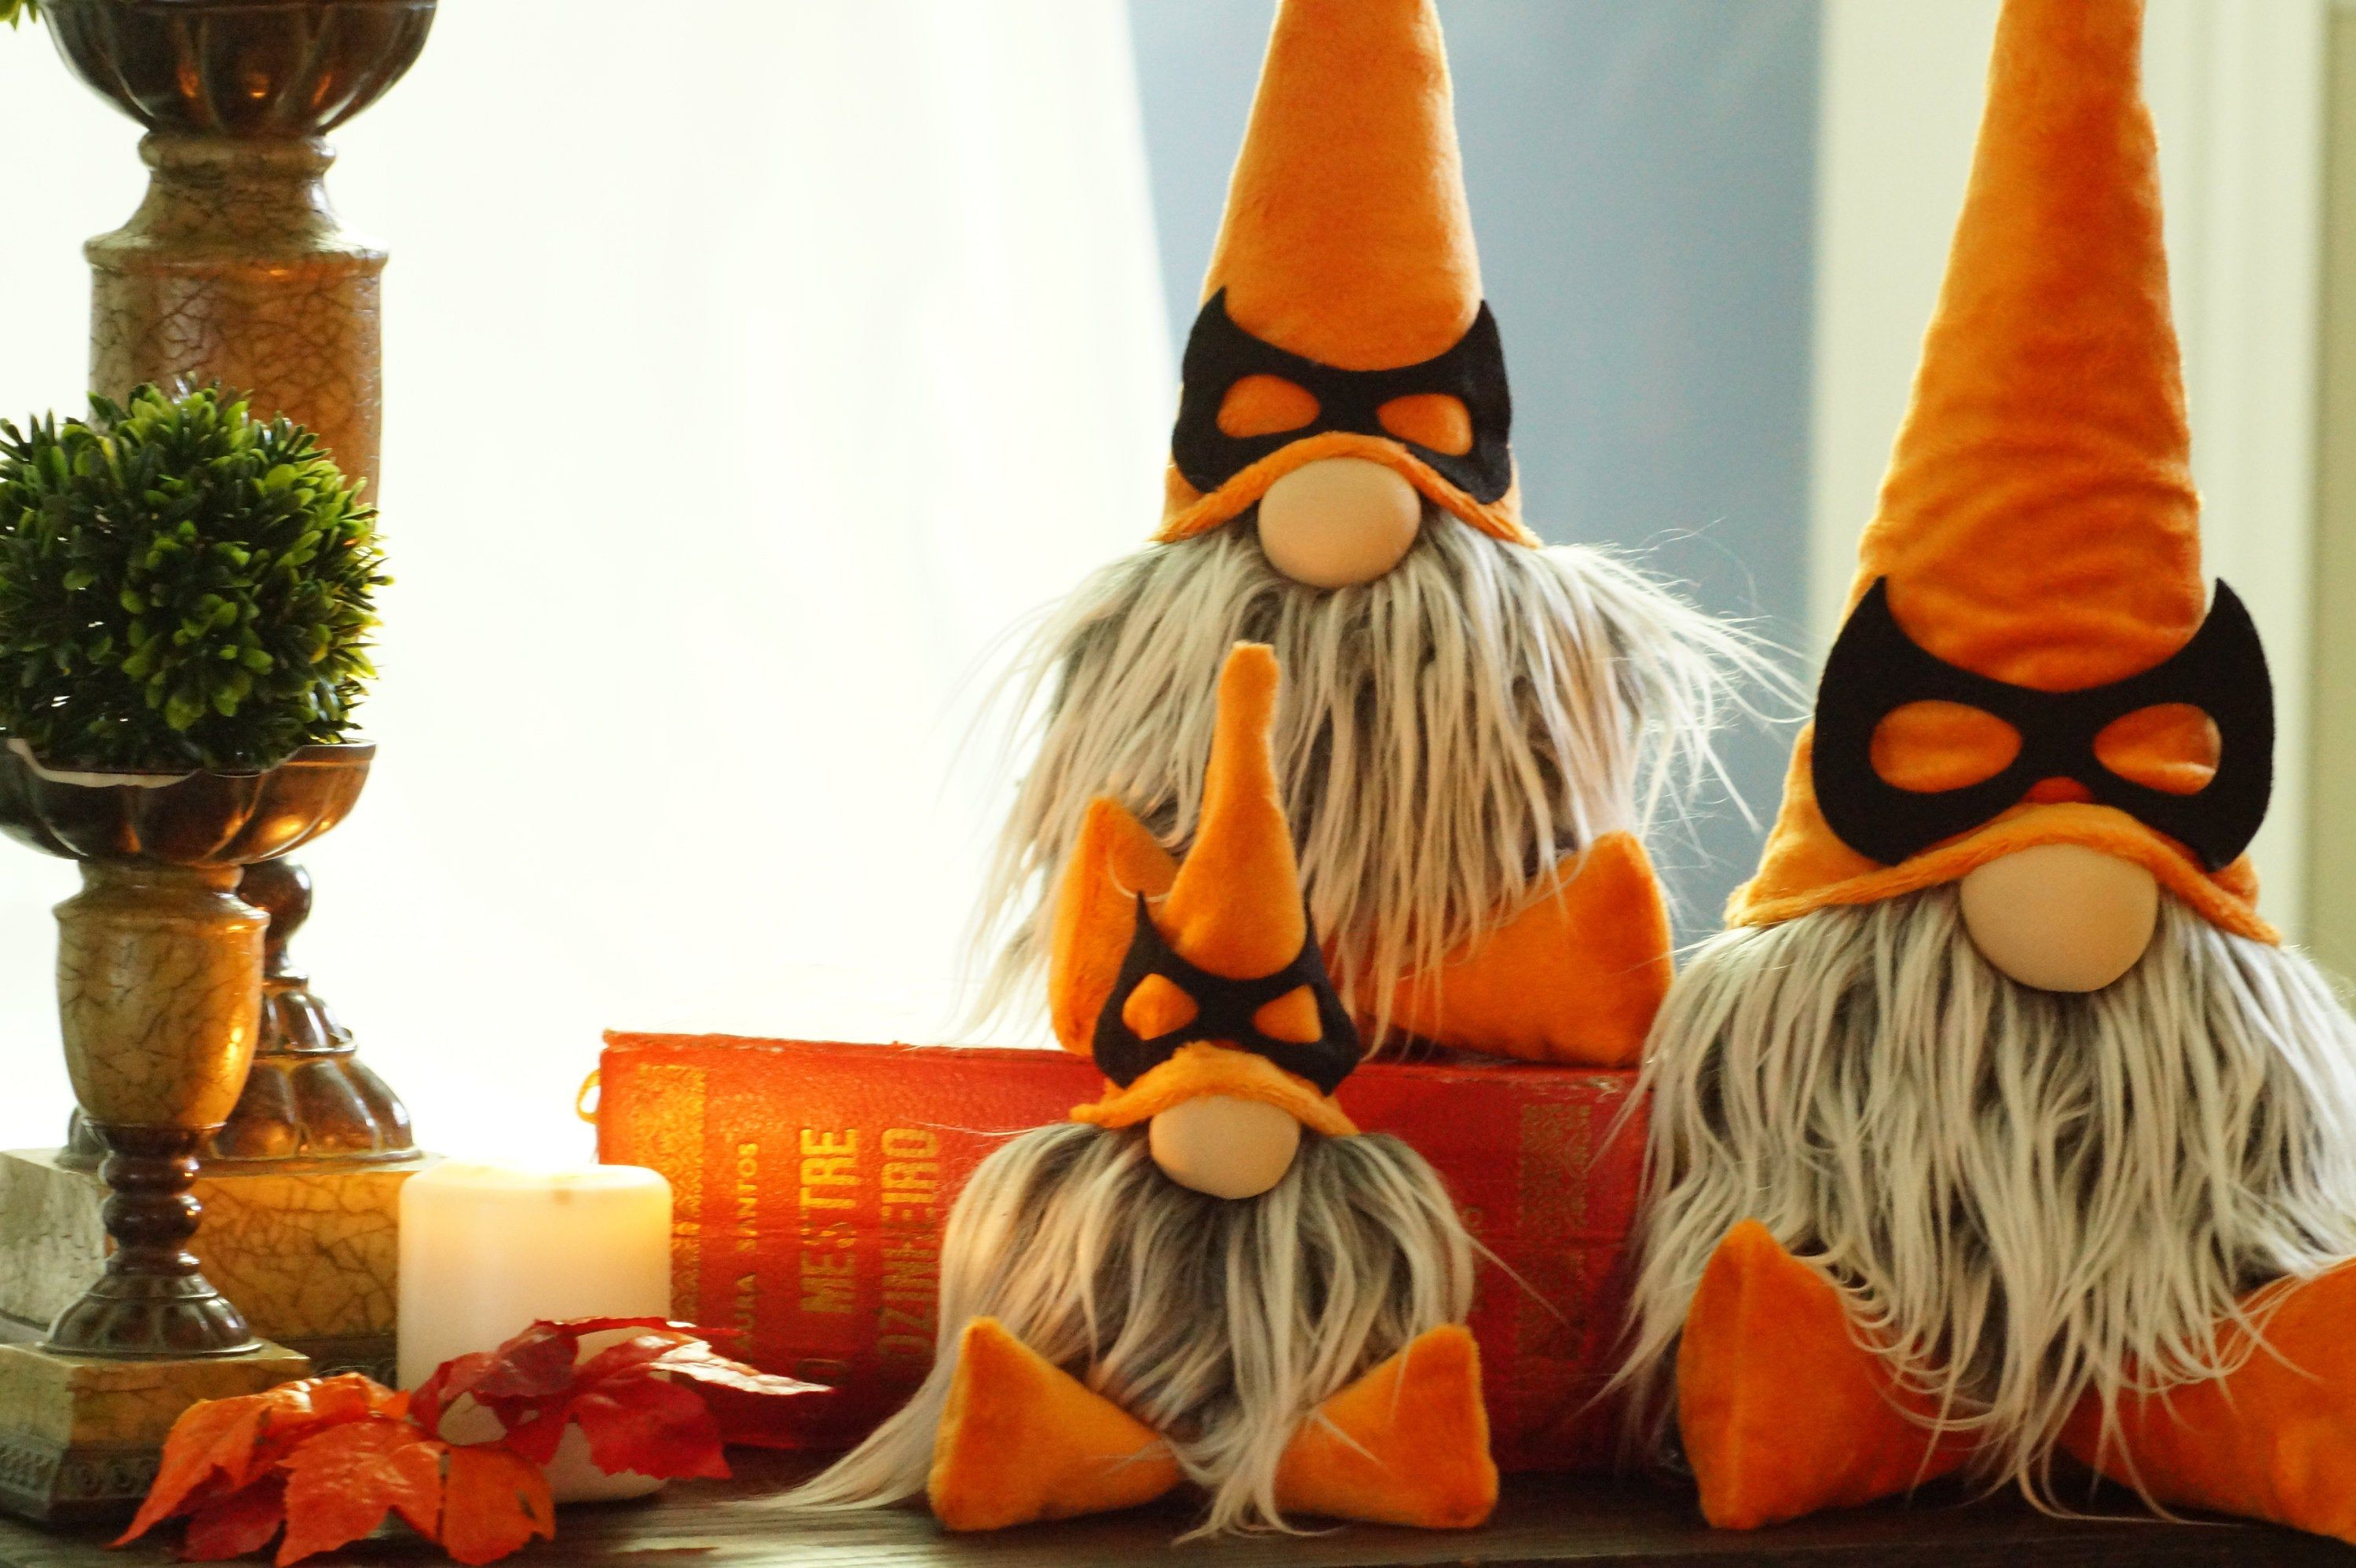 Halloween Gnome Orange gnome with mask. Unique Whimsical